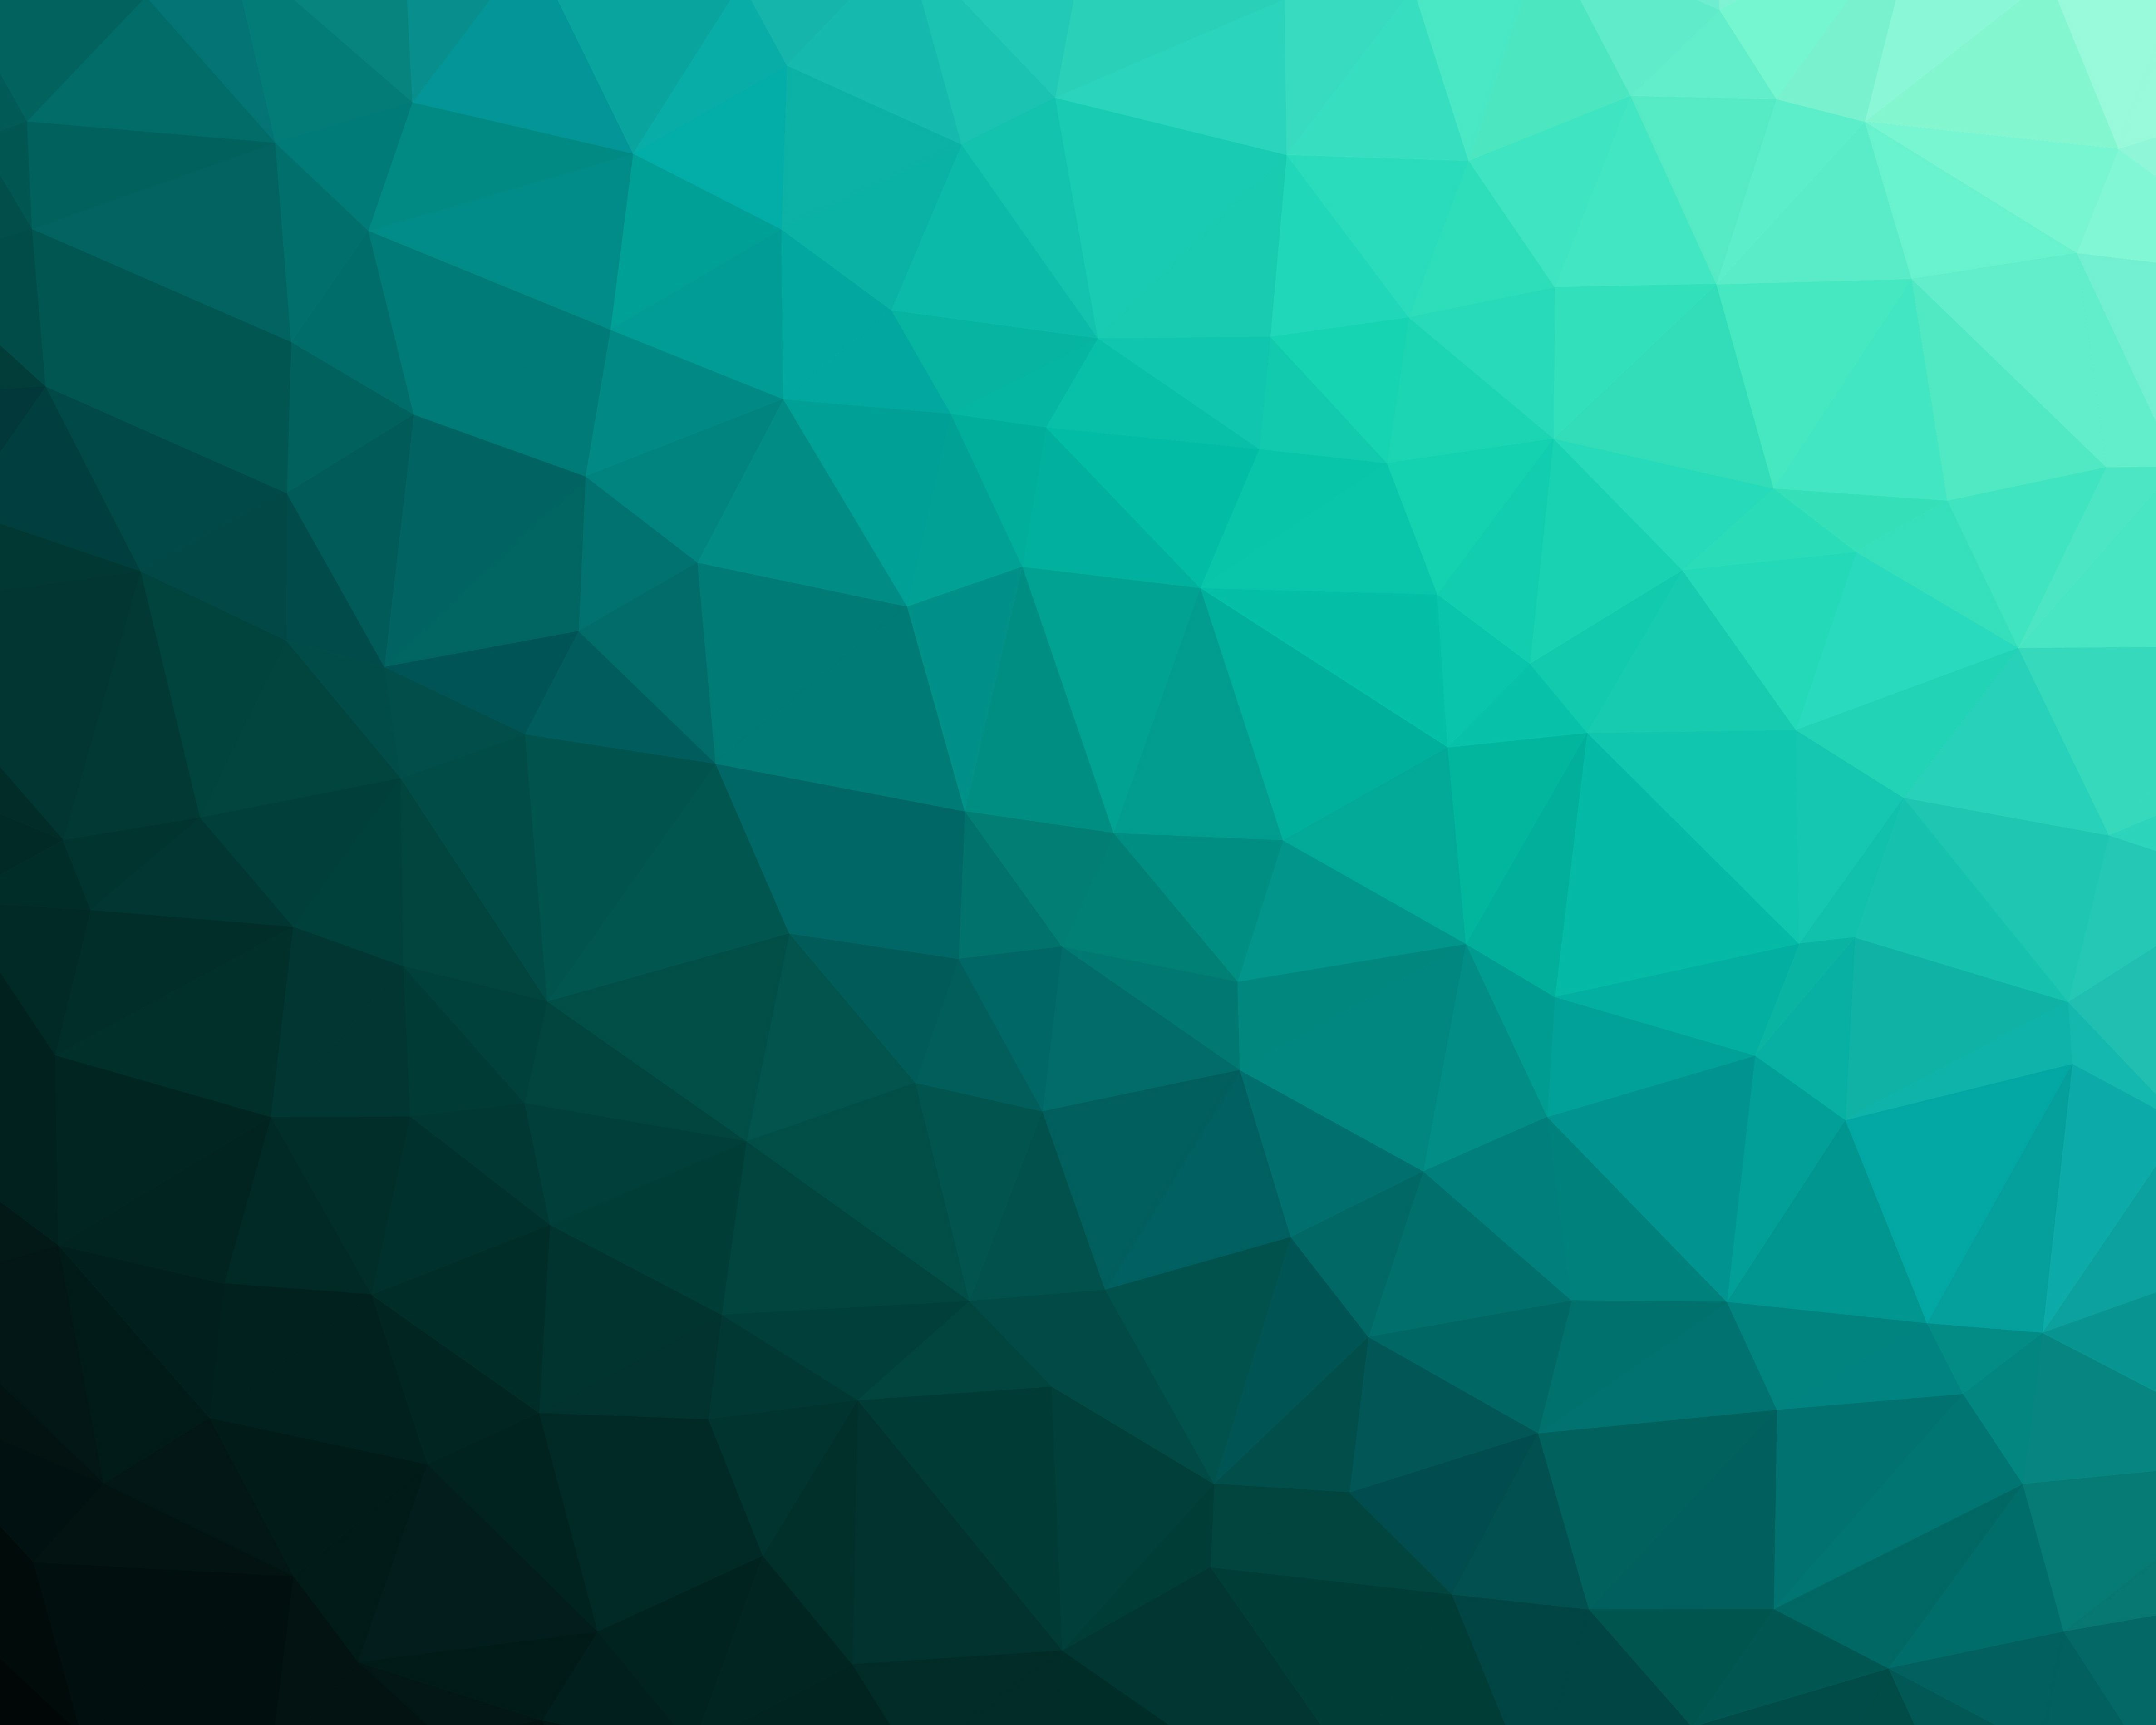 Cubes 3d Wallpaper Free Picture Geometric Shape Green Abstract Futuristic